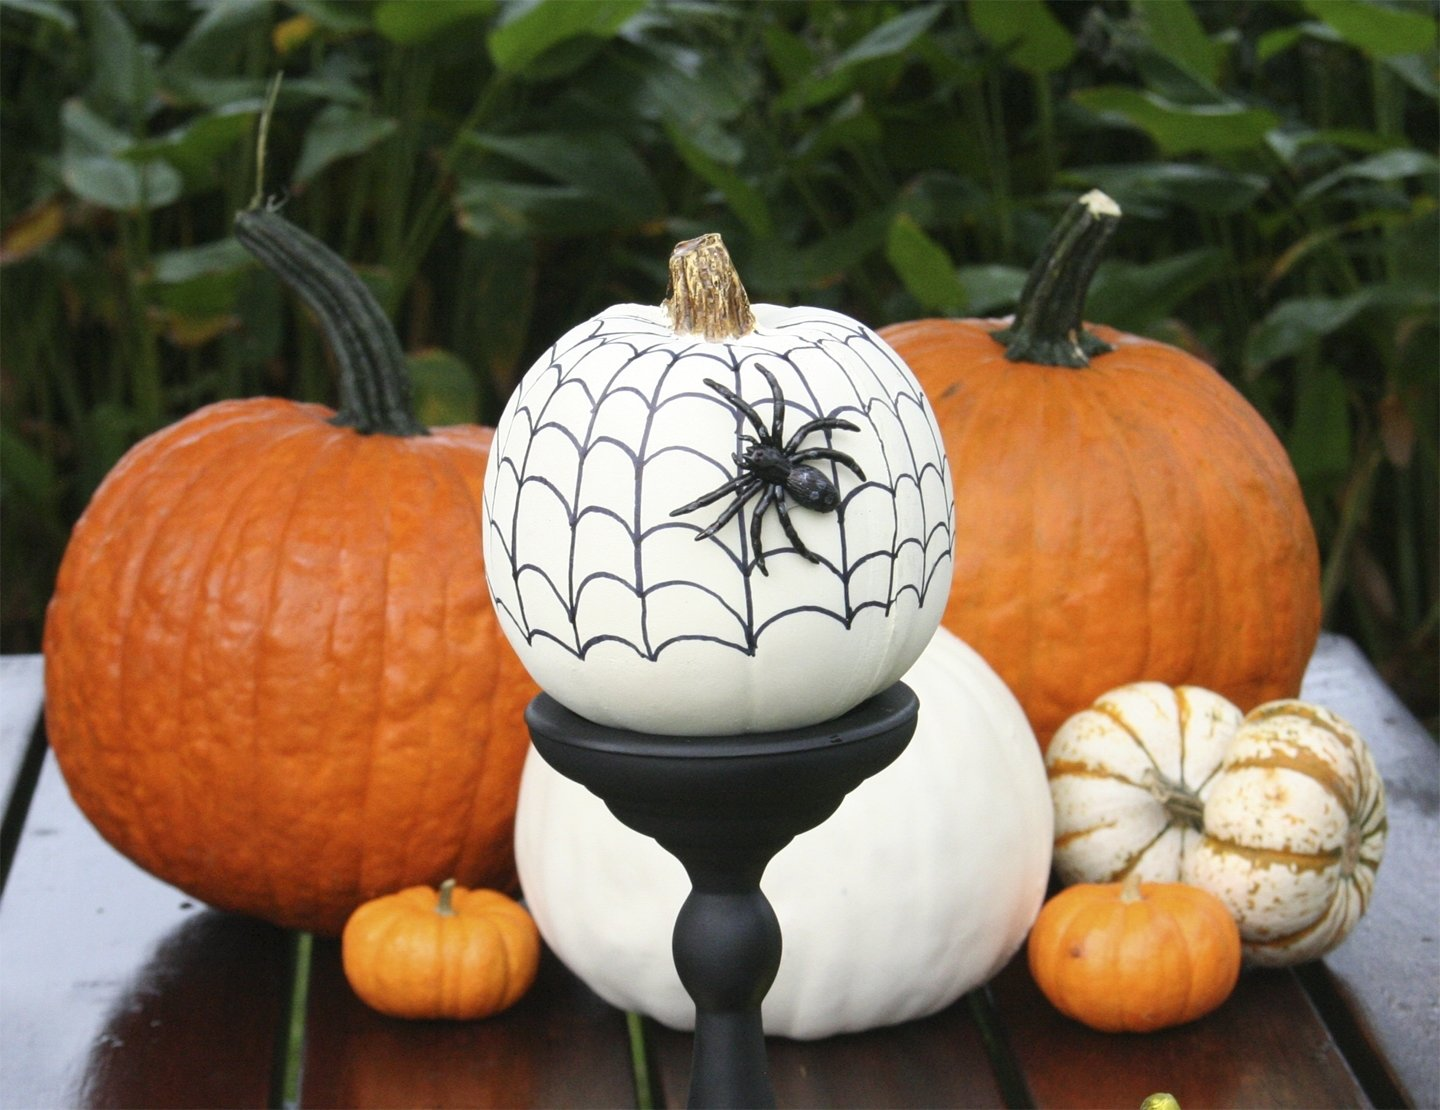 10 Unique Decorating Pumpkin Ideas Without Carving pumpkin decorating ideas without carving decorated pumpkin ideas 1 2020